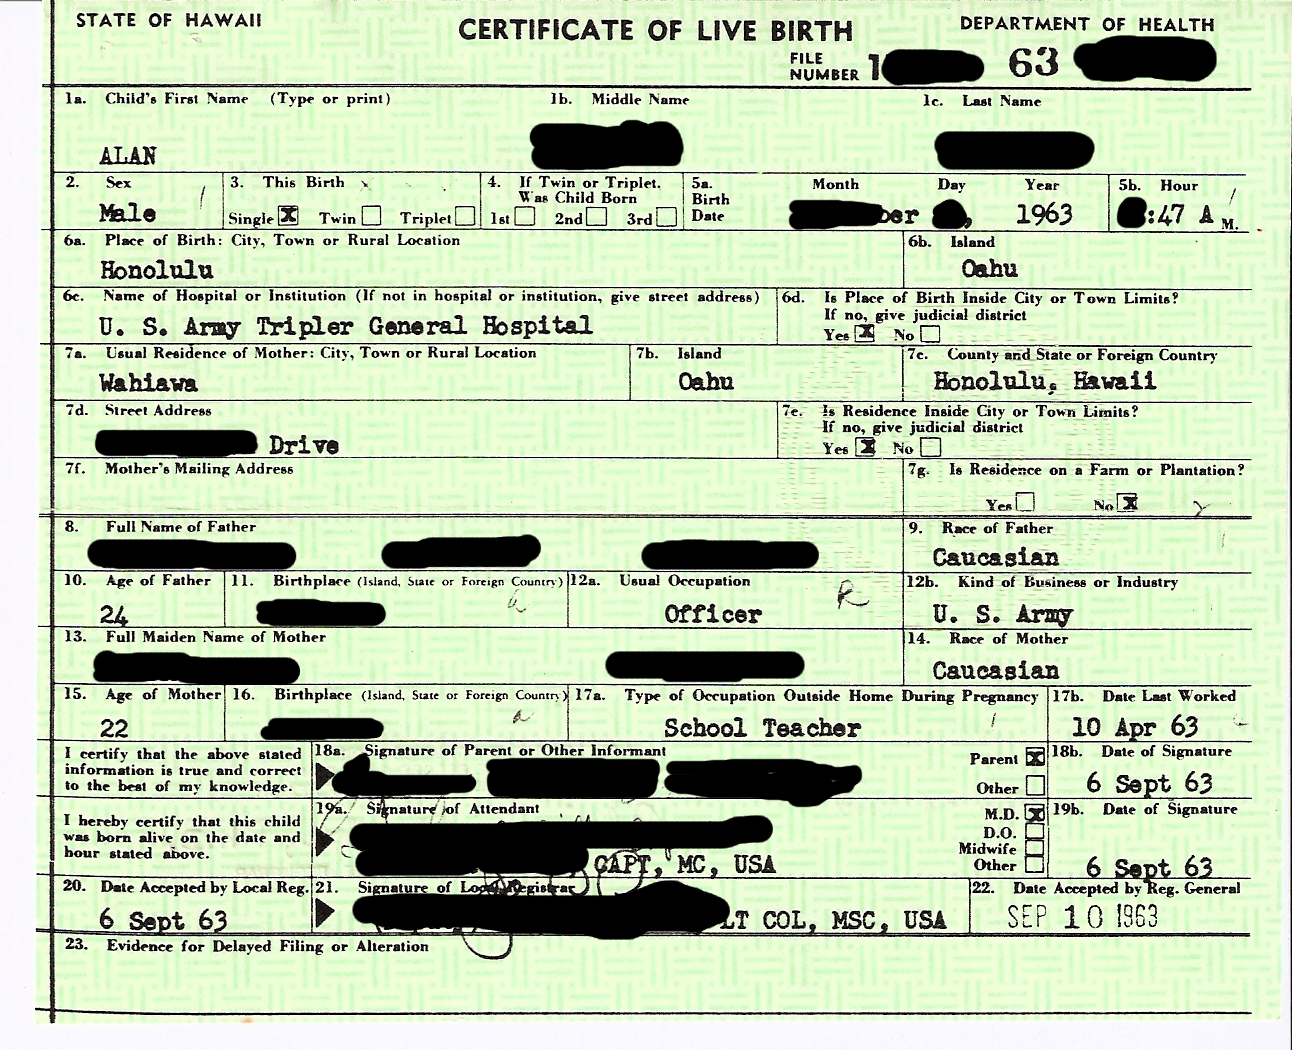 Hawaii birth certificate 1963 snarkybytes hawaii birth certificate 1963 1betcityfo Image collections